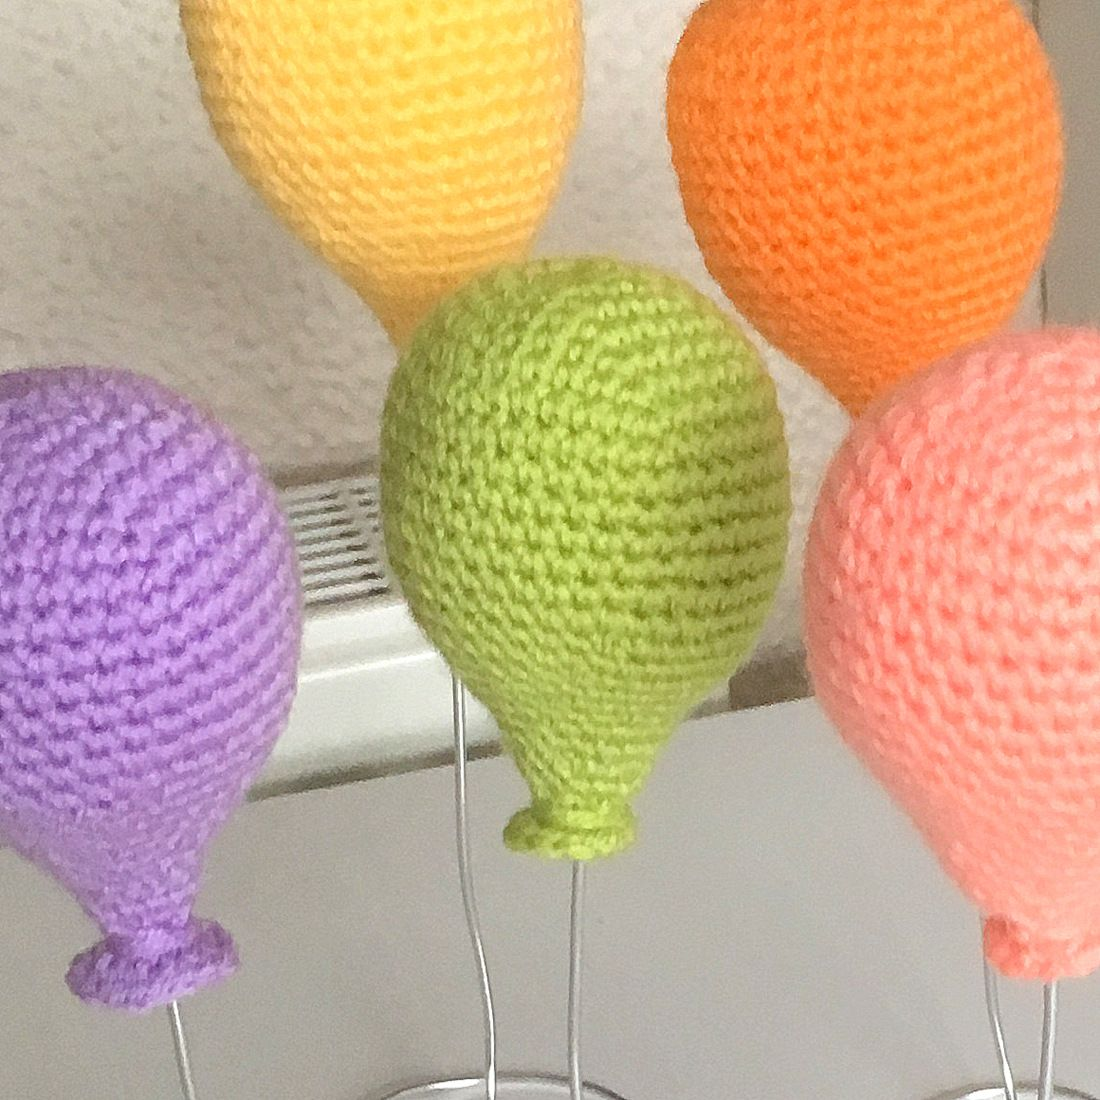 Free standing crochet balloons! A free pattern by Sarah